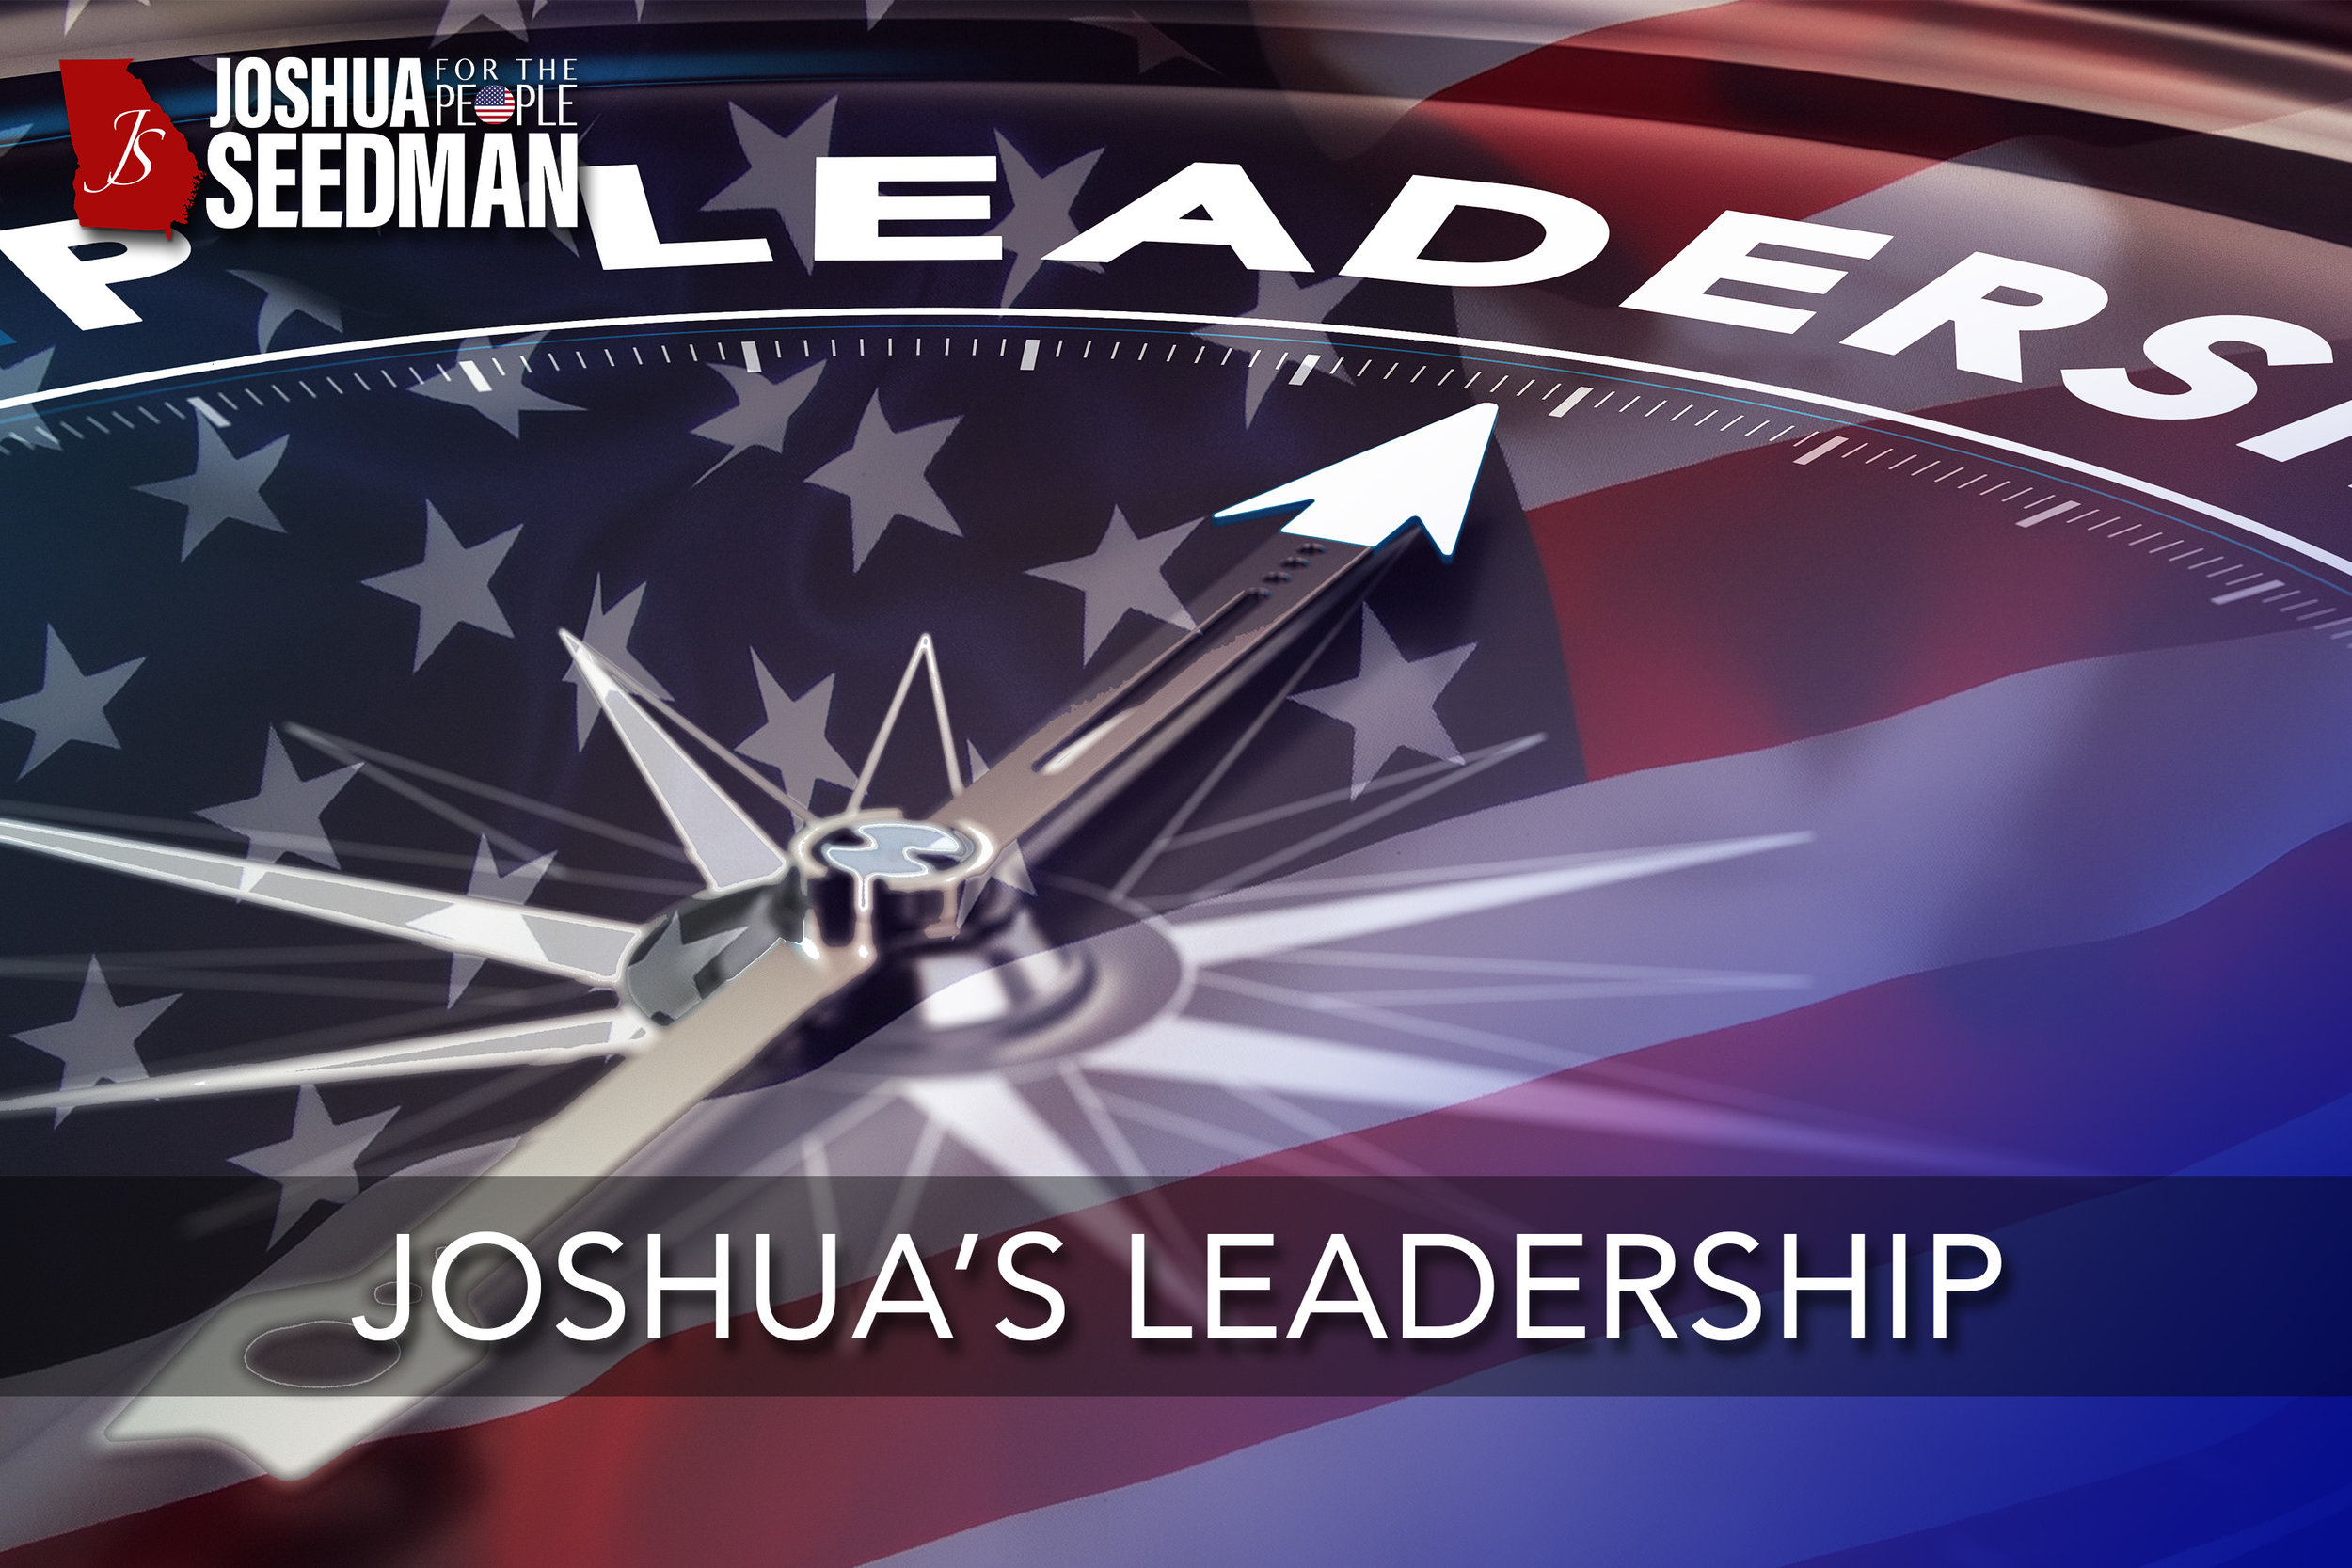 Joshua's Leadership - Read about Joshua's deep leadership experience and hear what global executives have to say about his leadership approach.